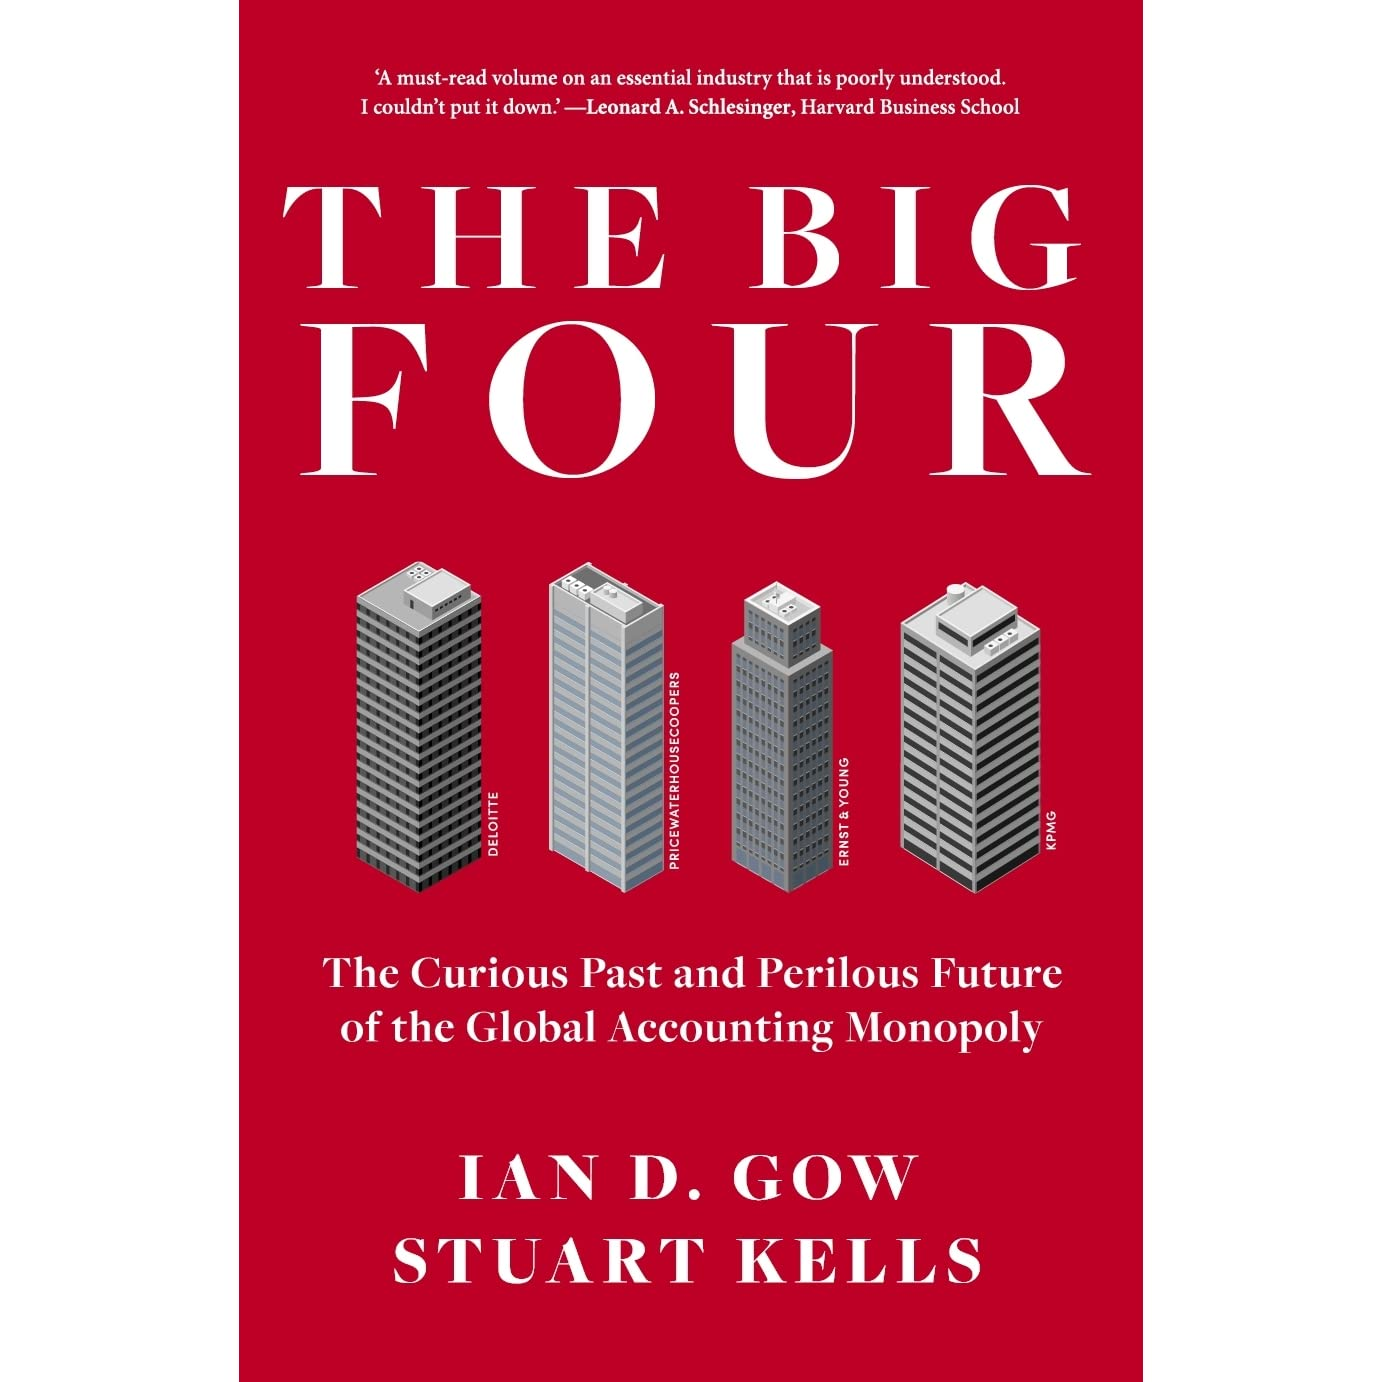 The Big Four: The Curious Past and Perilous Future of the